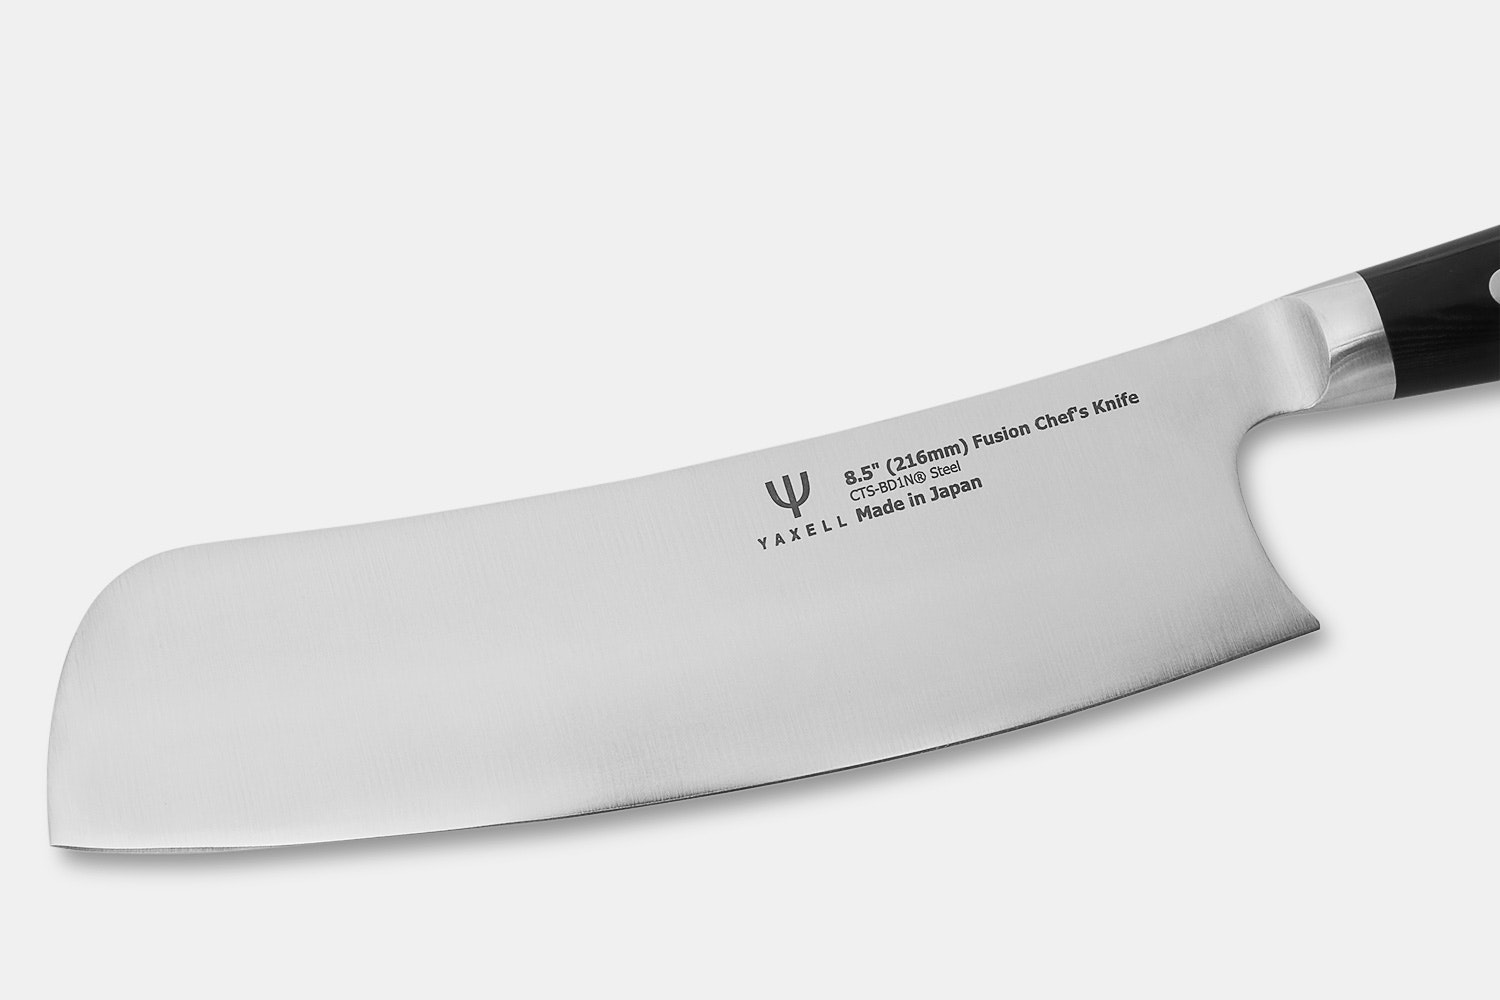 Apogee Culinary Dragon Fusion Kitchen Knife w/BD1N